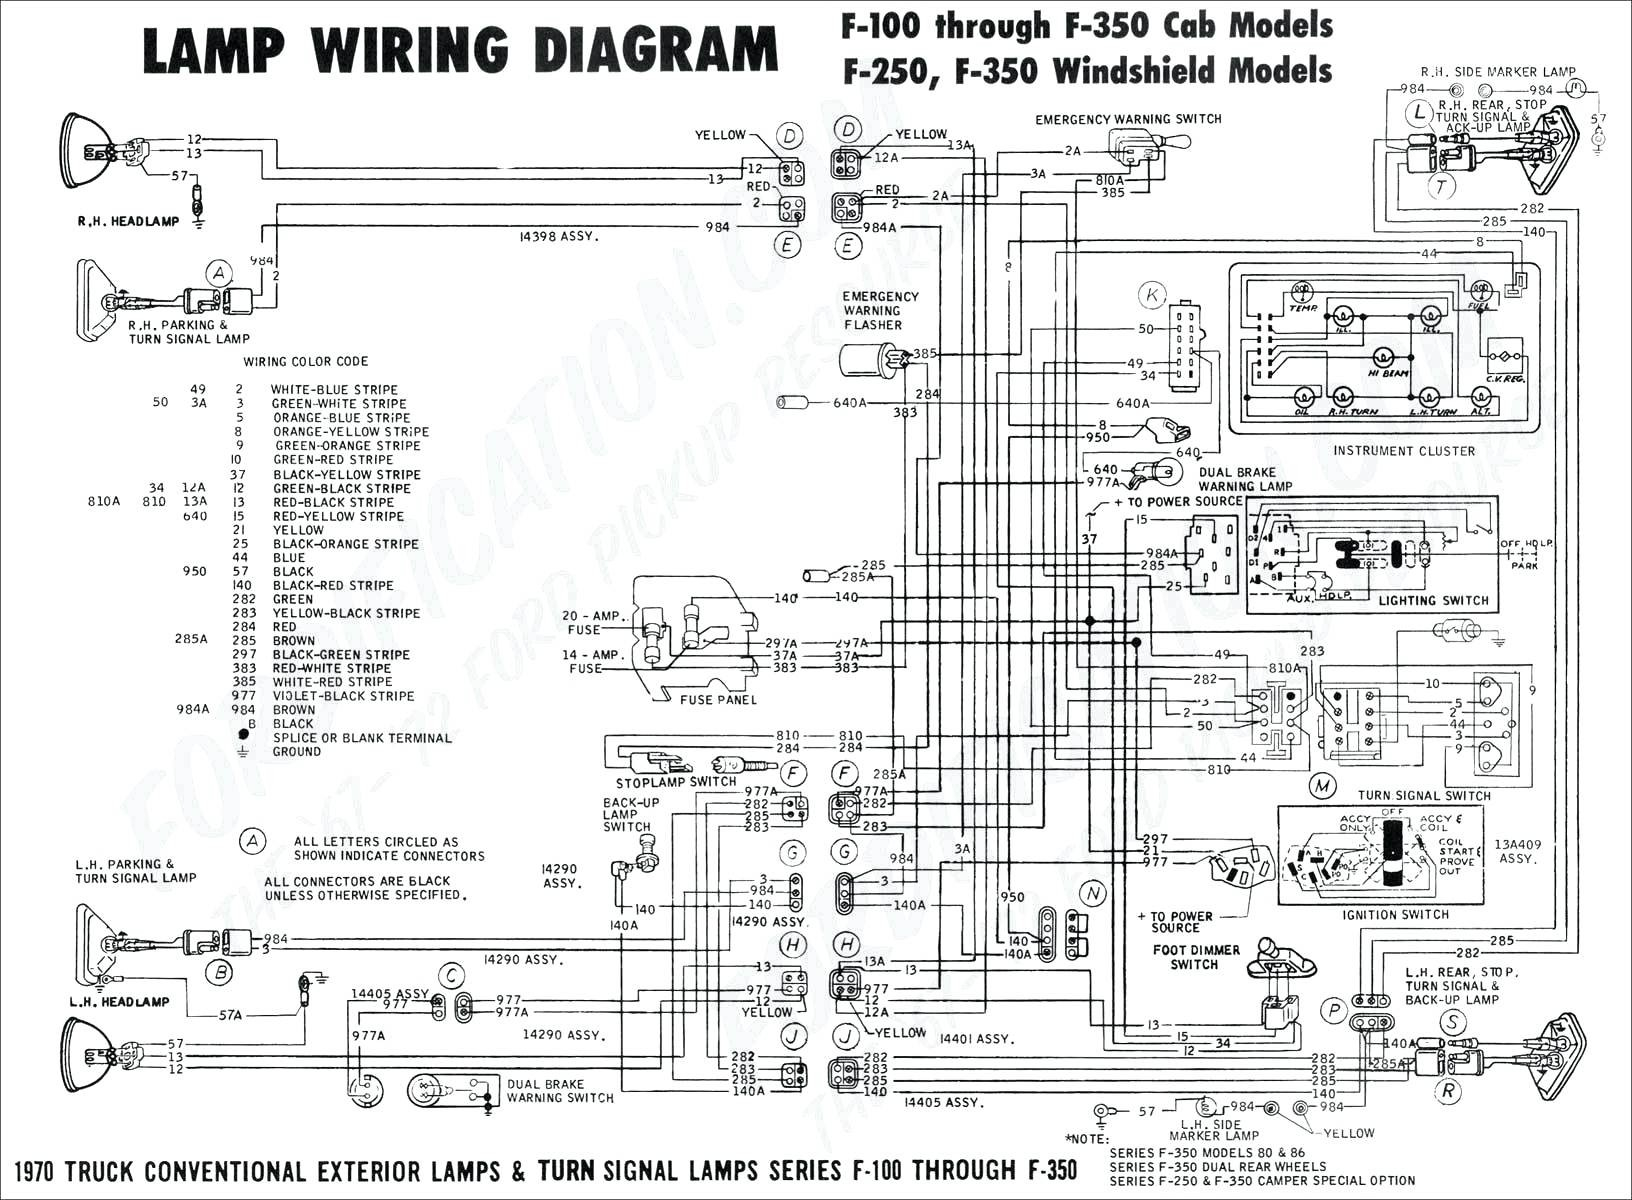 1994 ford f150 wiring diagram Collection-Here is a plete diagram at this link Diagrams Ford Diagrams 1994 Ford F150 EFI Wiring Diagram 94 FOF L EFI 8-l